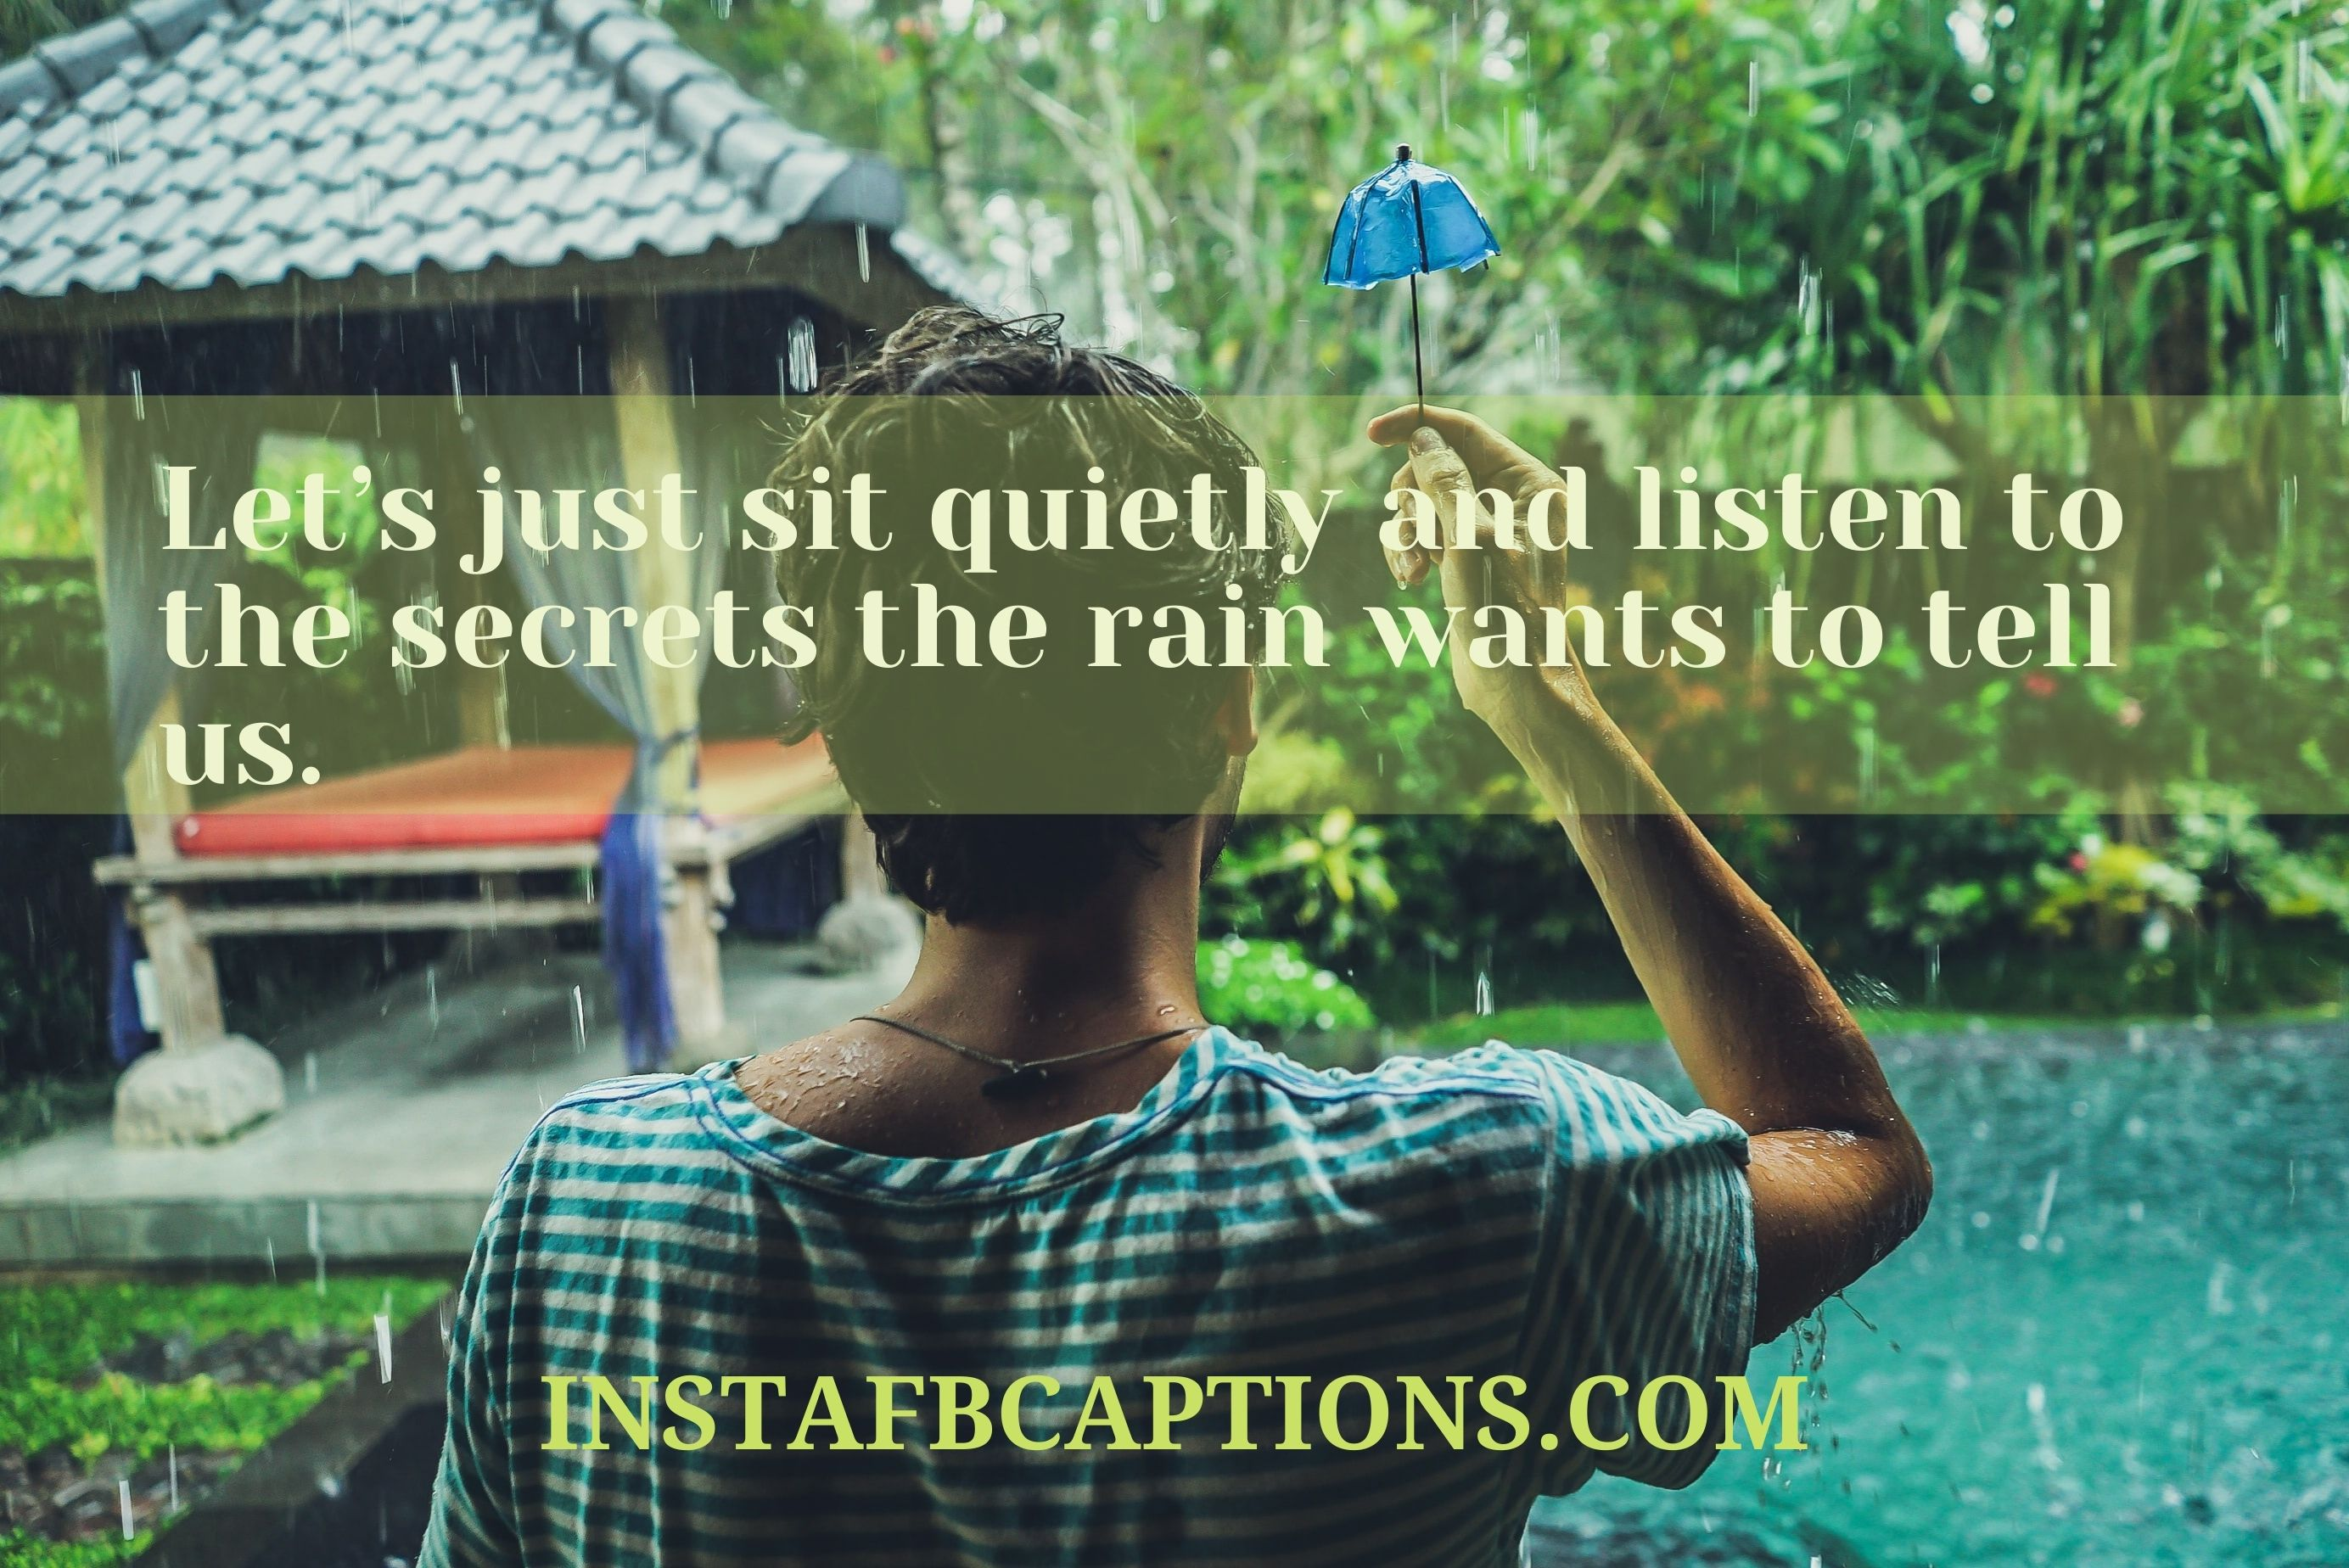 Umbrella Instagram Captions  - Let   s just sit quietly and listen to the secrets the rain wants to tell us - Monsoon Rainy Day Captions ||(Cloudy Storm Raindrops)